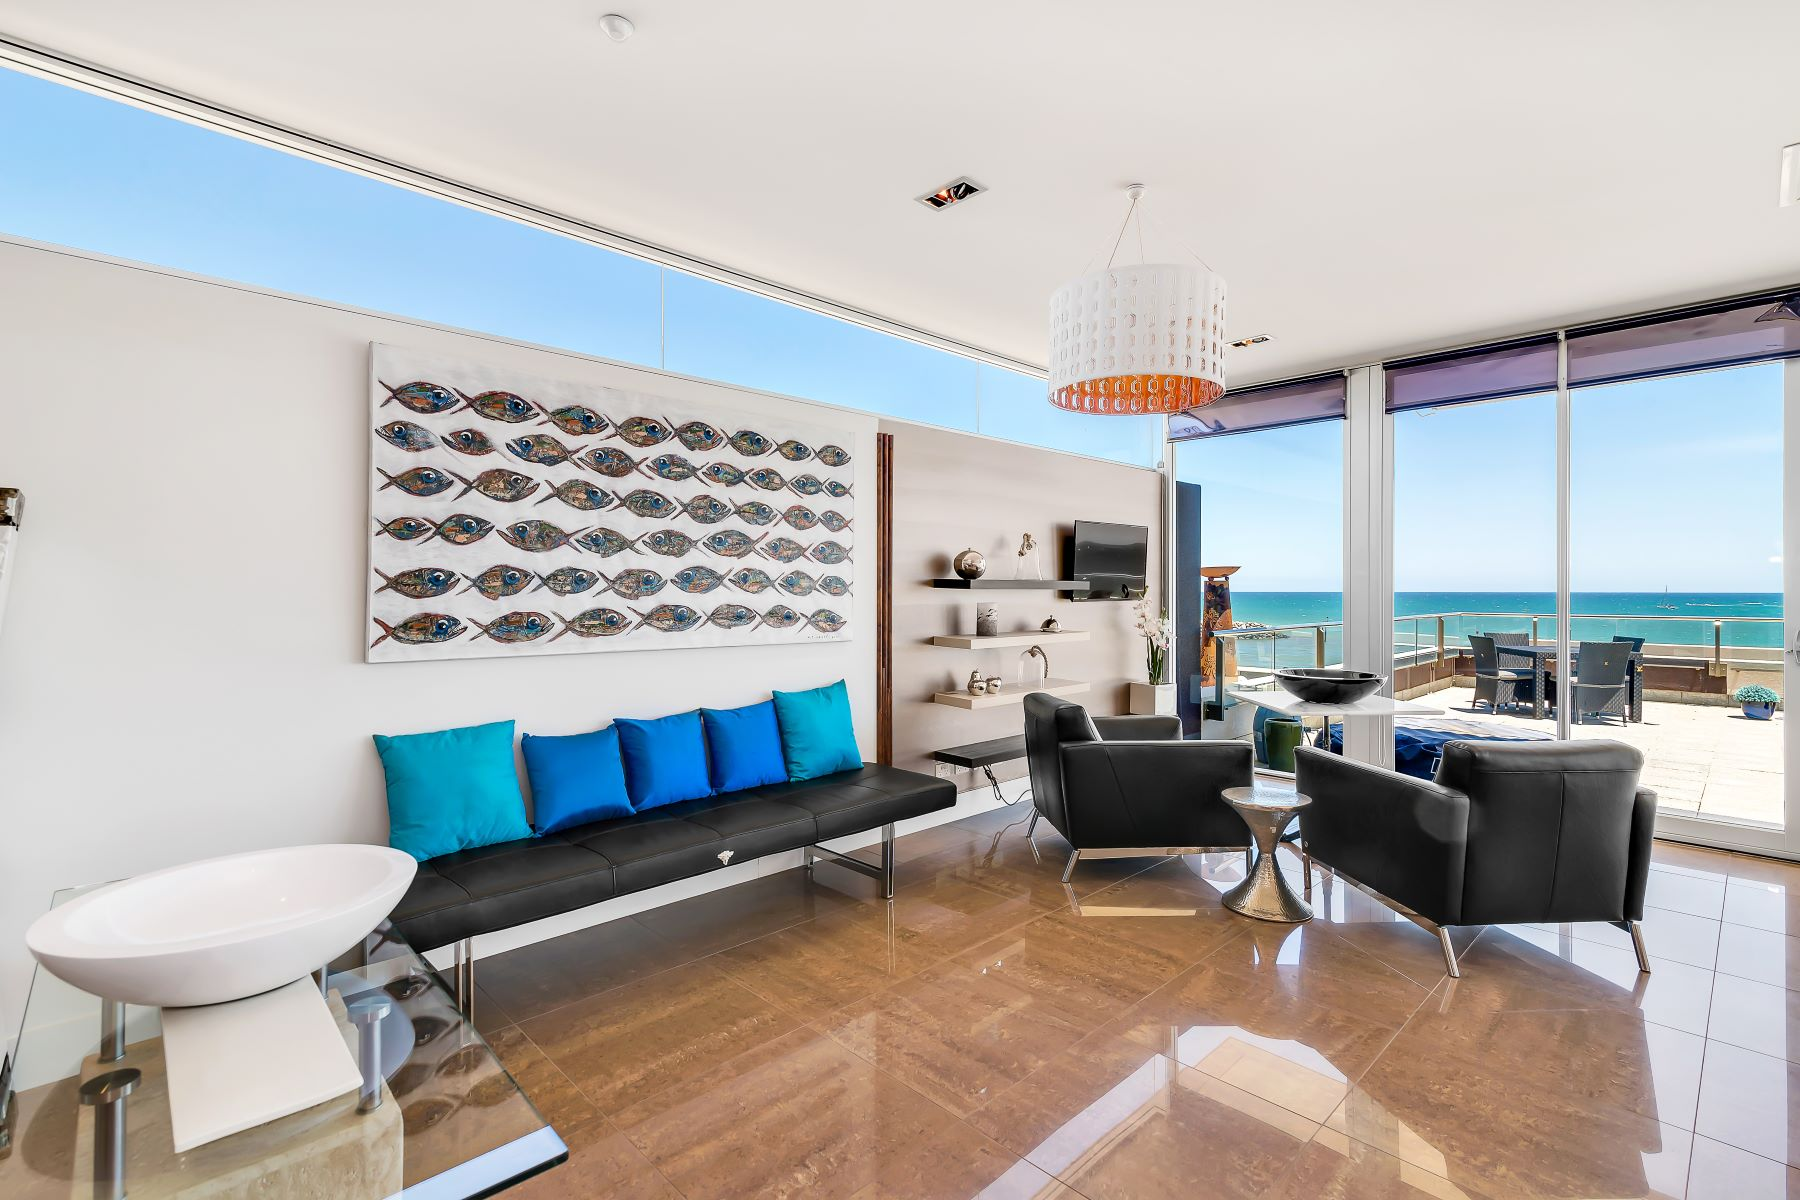 Appartamento per Vendita alle ore Stunning Beachfront Penthouse Apartment 4.3, 8-9 North Esplanade Glenelg North, South Australia, 5045 Australia